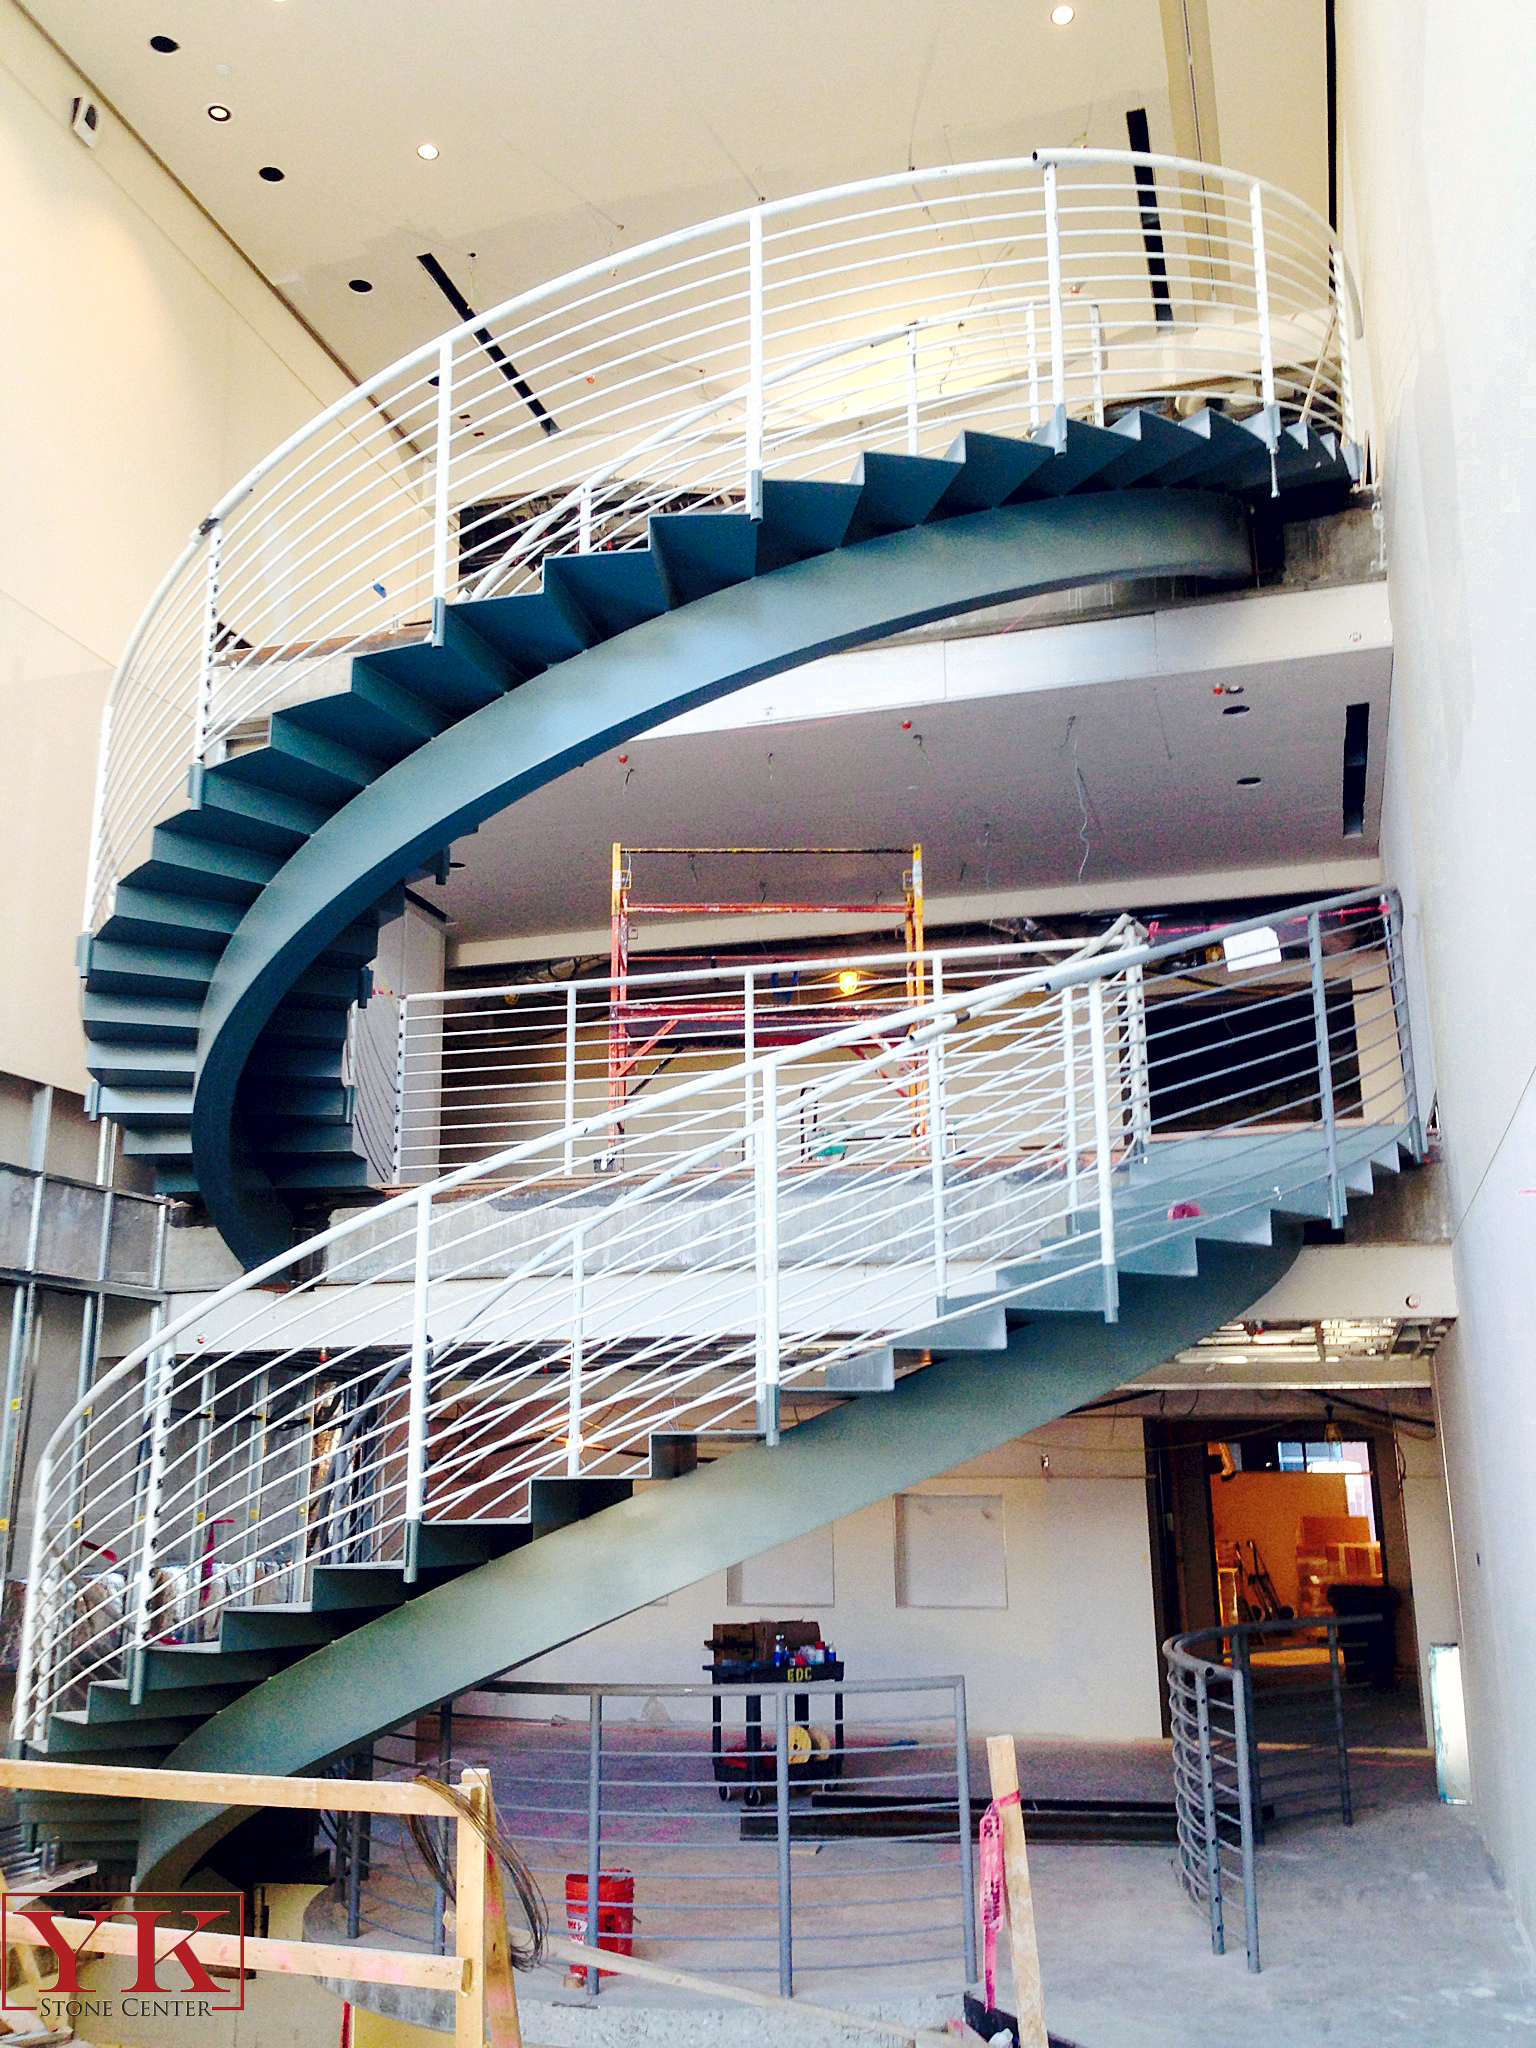 Antero resources spiral stair case, union one station stair case, stone in antero resoures spiral stair case in denver